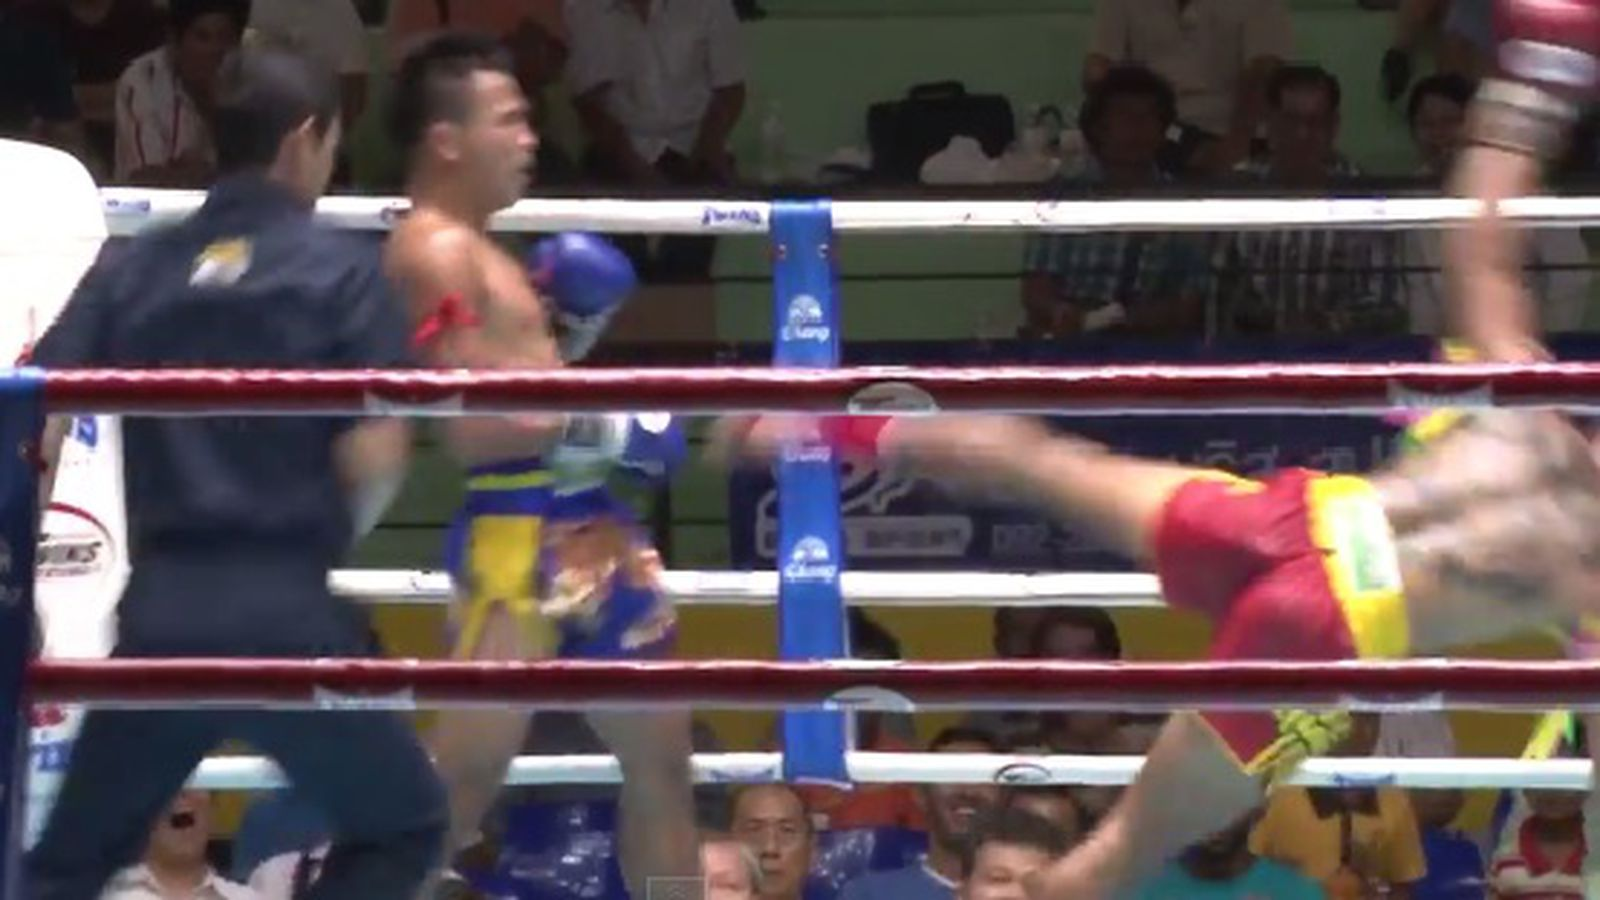 Muay Thai results: Pornsanae and Pokkaew have crazy violent shootout!